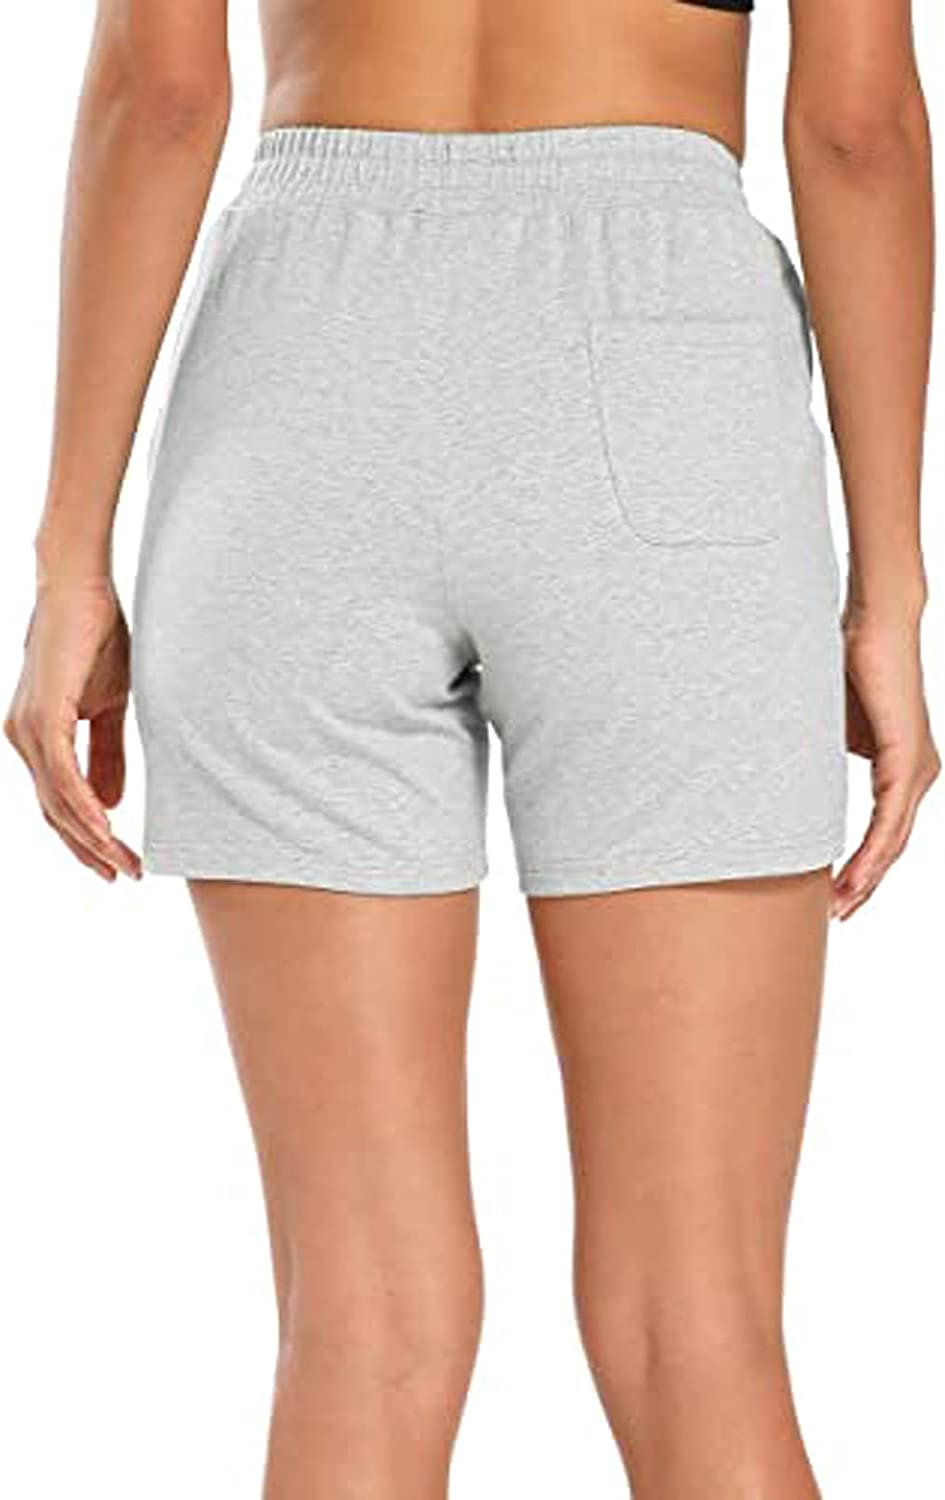 Fankle Womens Solid Color Casual Shorts Summer Drawstring Elastic Waist Comfy Beach Short with Pockets